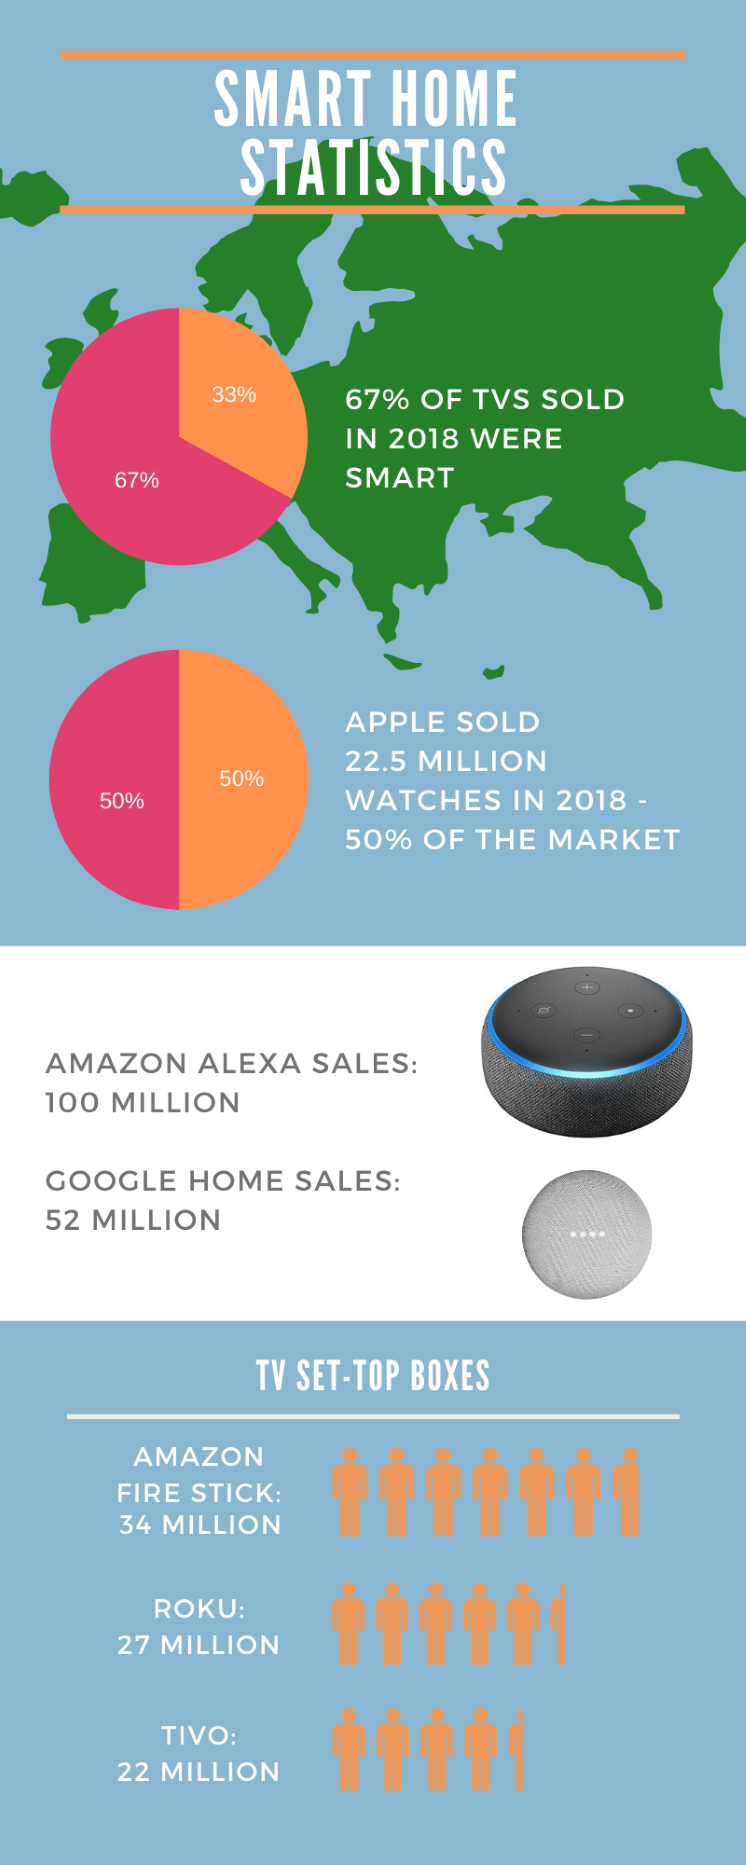 An infographic filled with smart home statistics